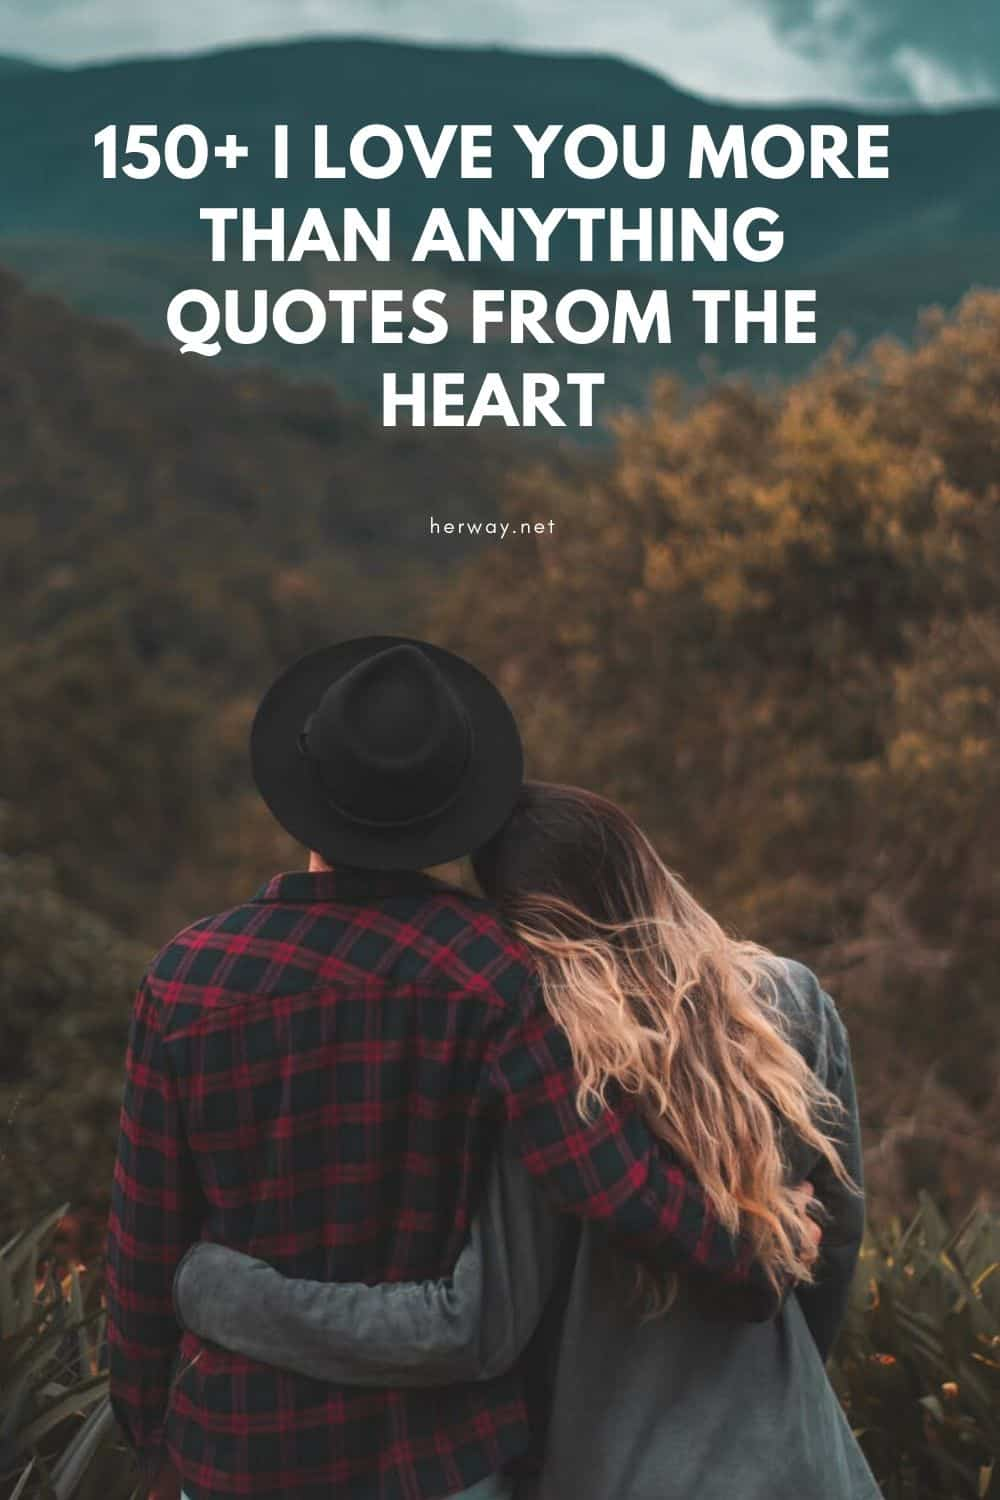 150+ I Love You More Than Anything Quotes From The Heart